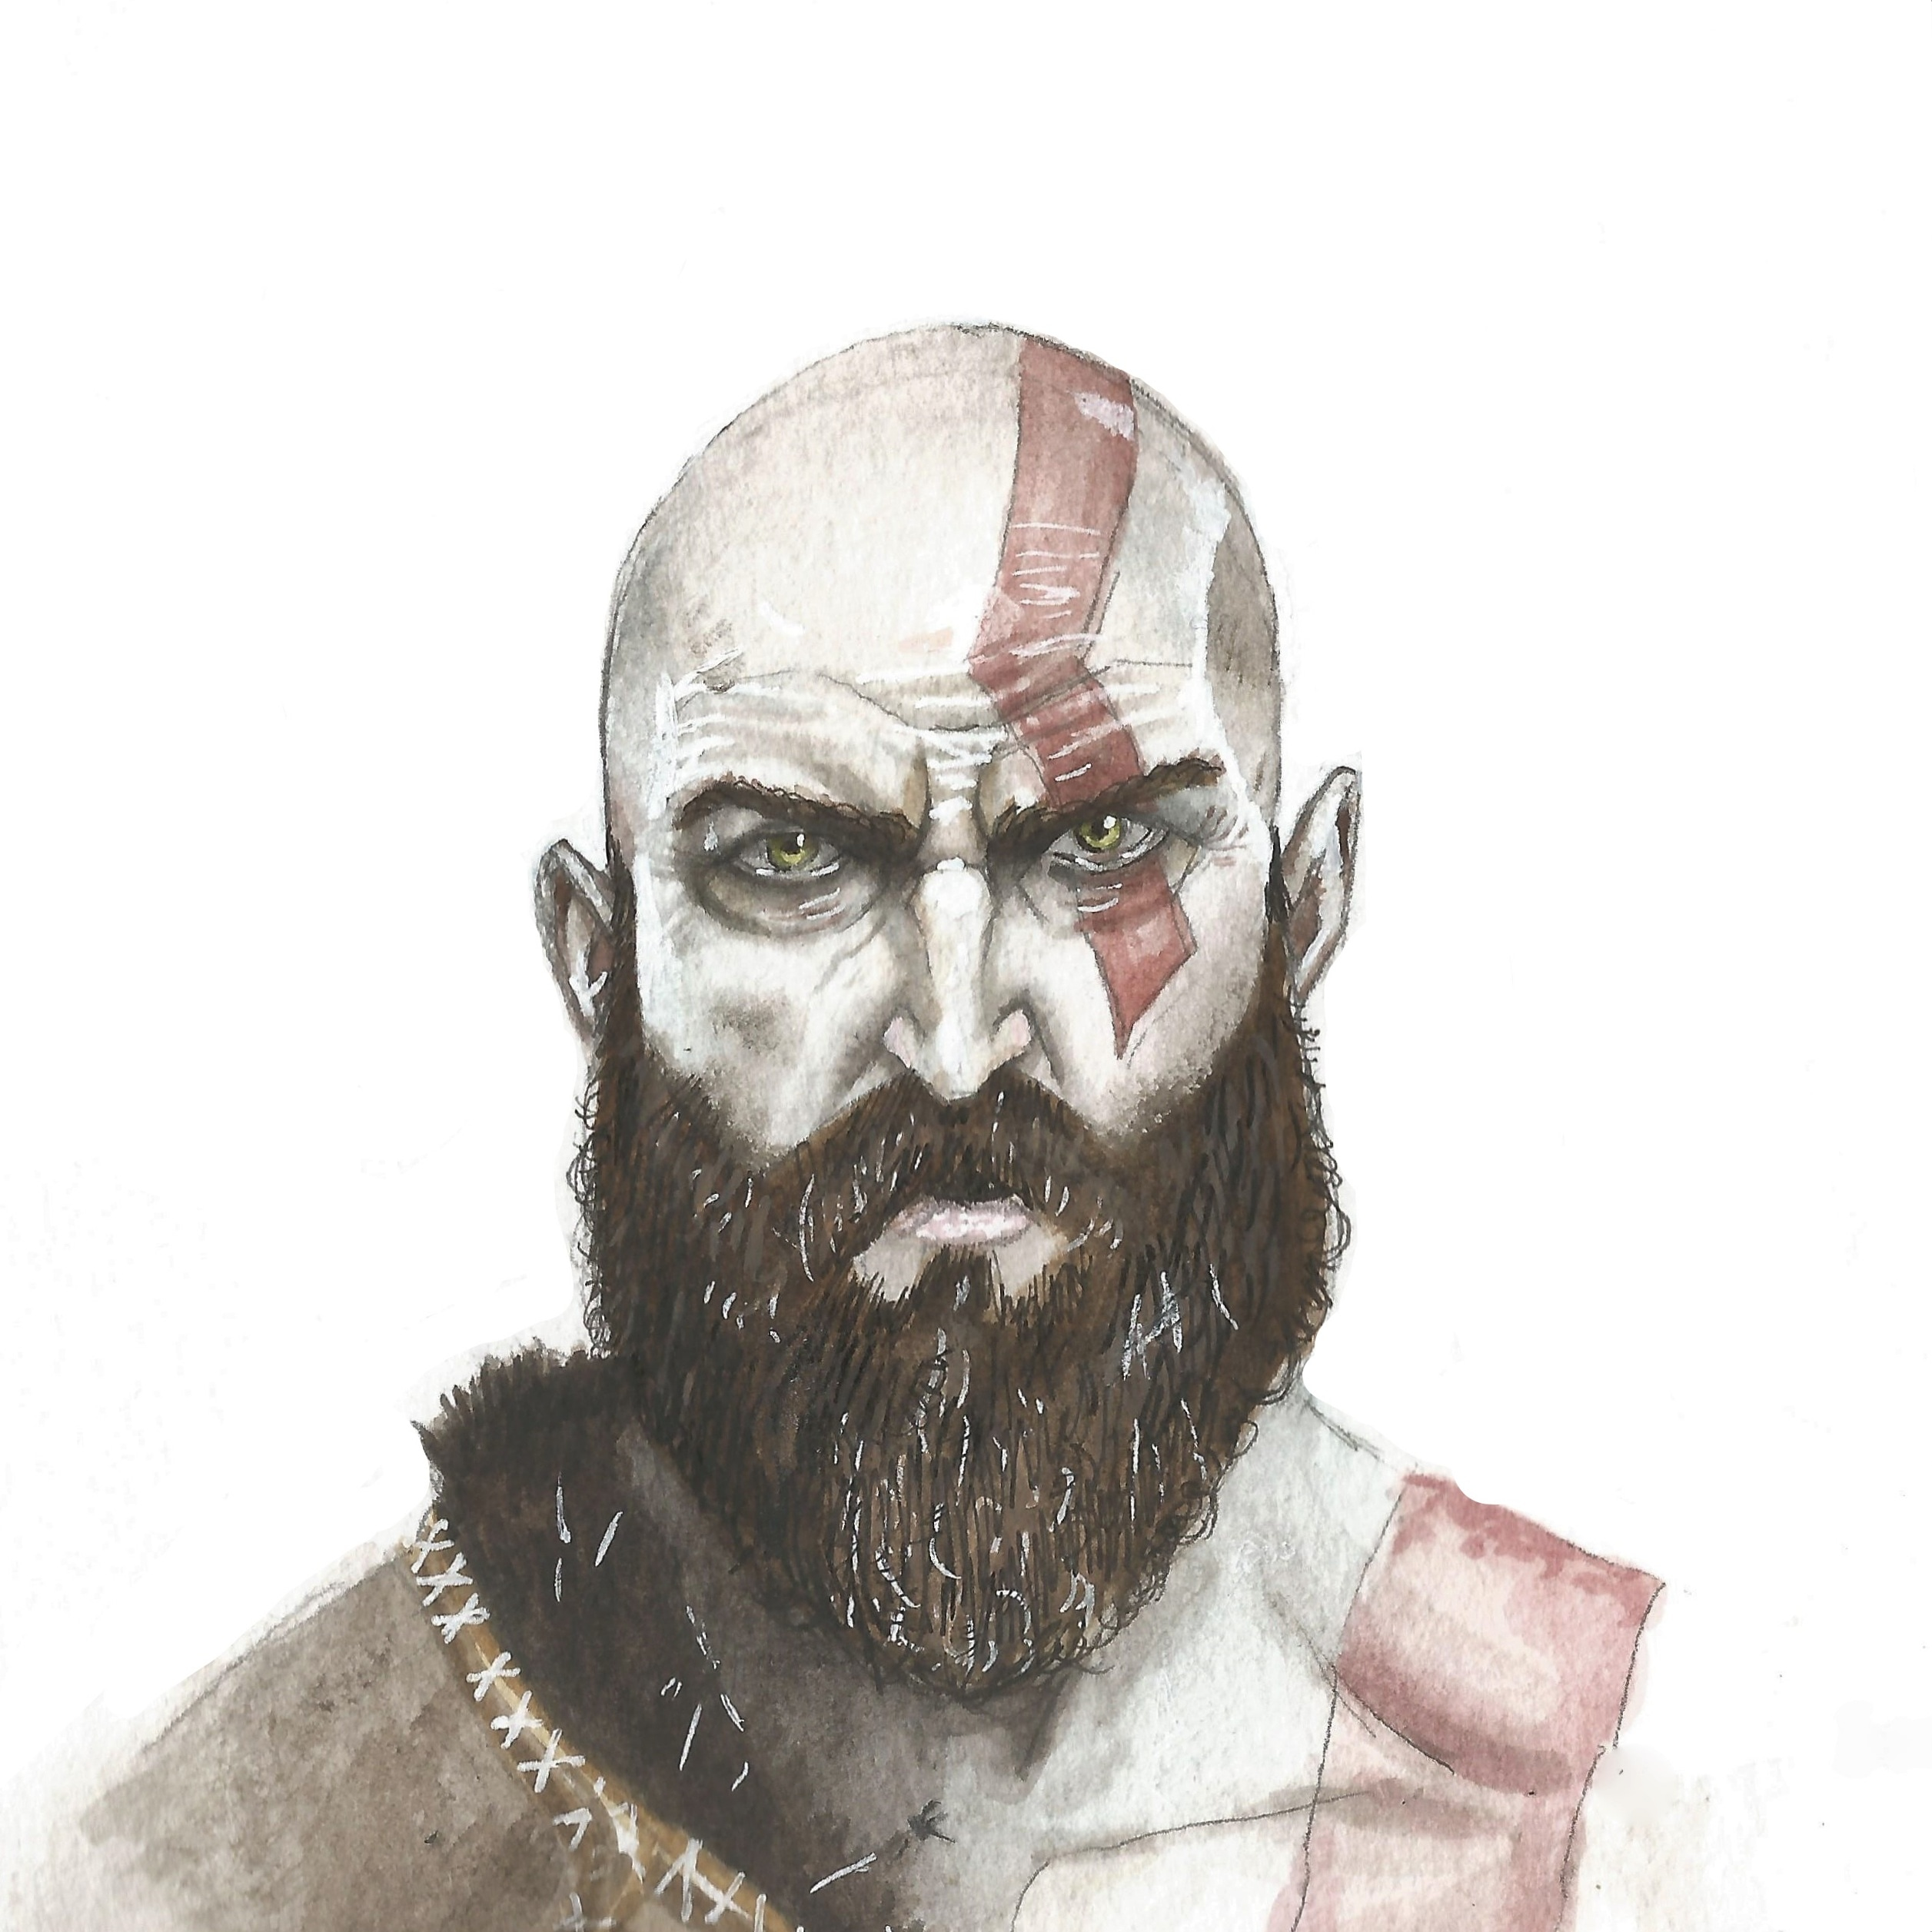 The Best Free Kratos Watercolor Images Download From 2 Free